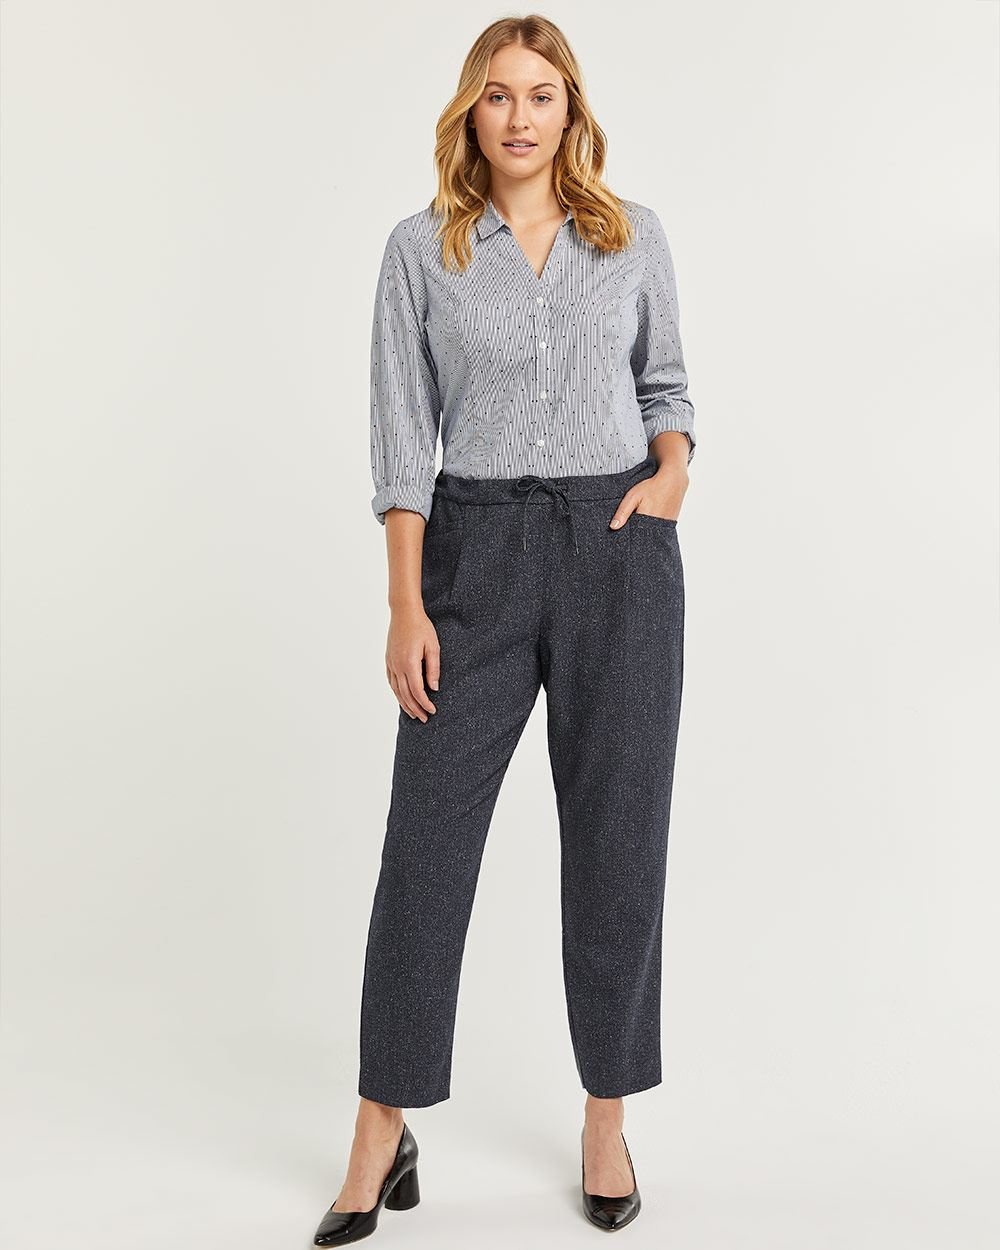 Nep Yarn Jogger Pull On Pants